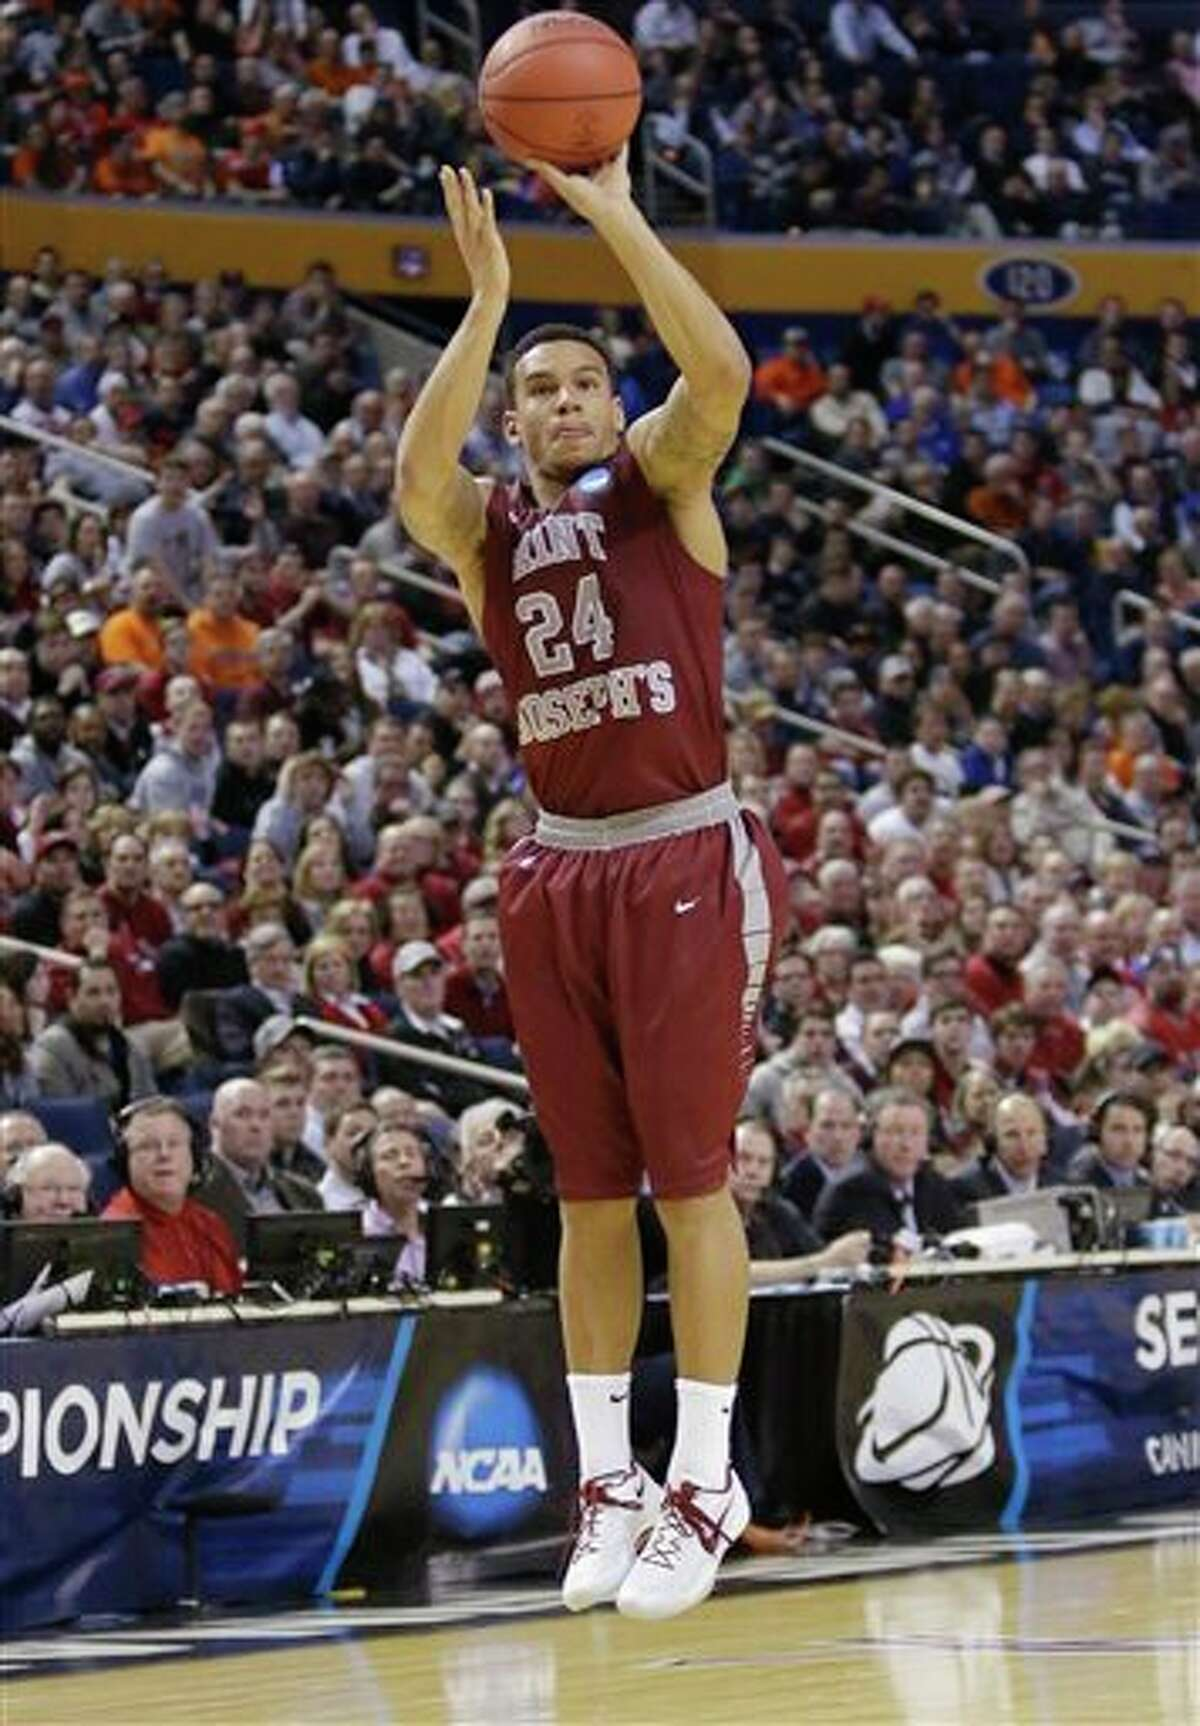 Saint Joseph's 's Chris Wilson (24) shoots during the first half of a second-round game against Connecticut in the NCAA college basketball tournament in Buffalo, N.Y., Thursday, March 20, 2014. (AP Photo/Nick LoVerde)